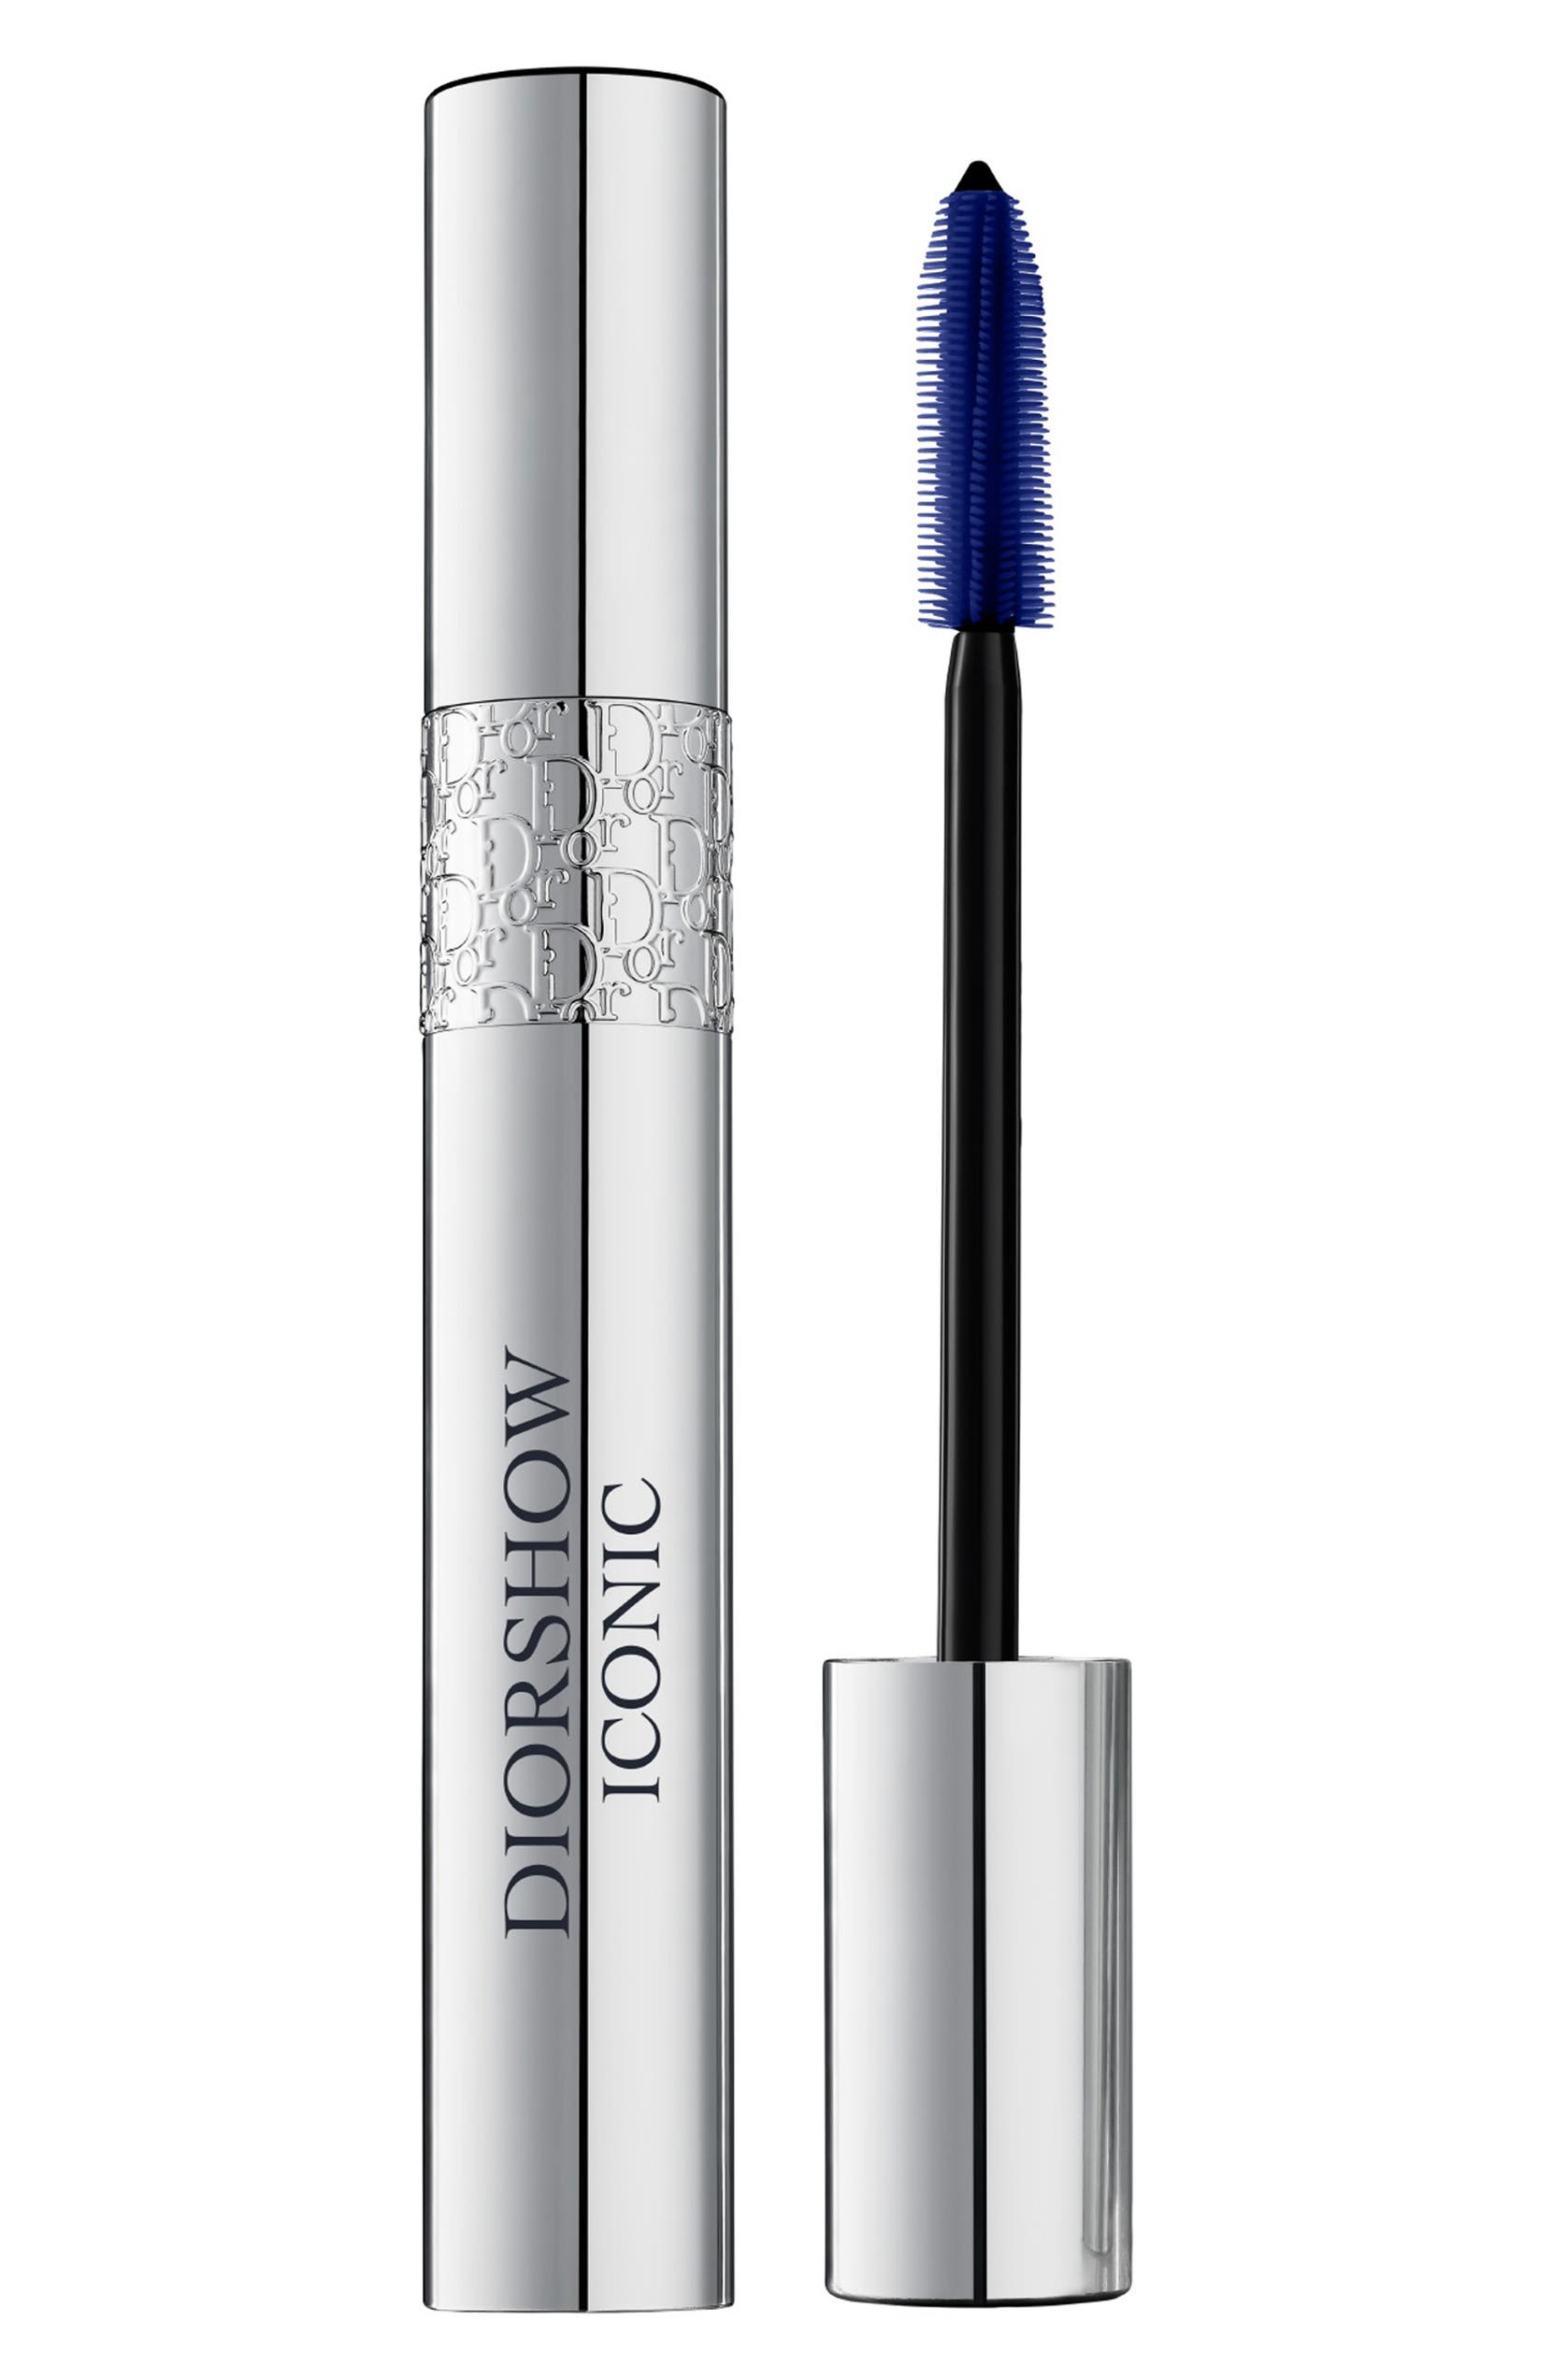 Diorshow Iconic Mascara by Dior #14